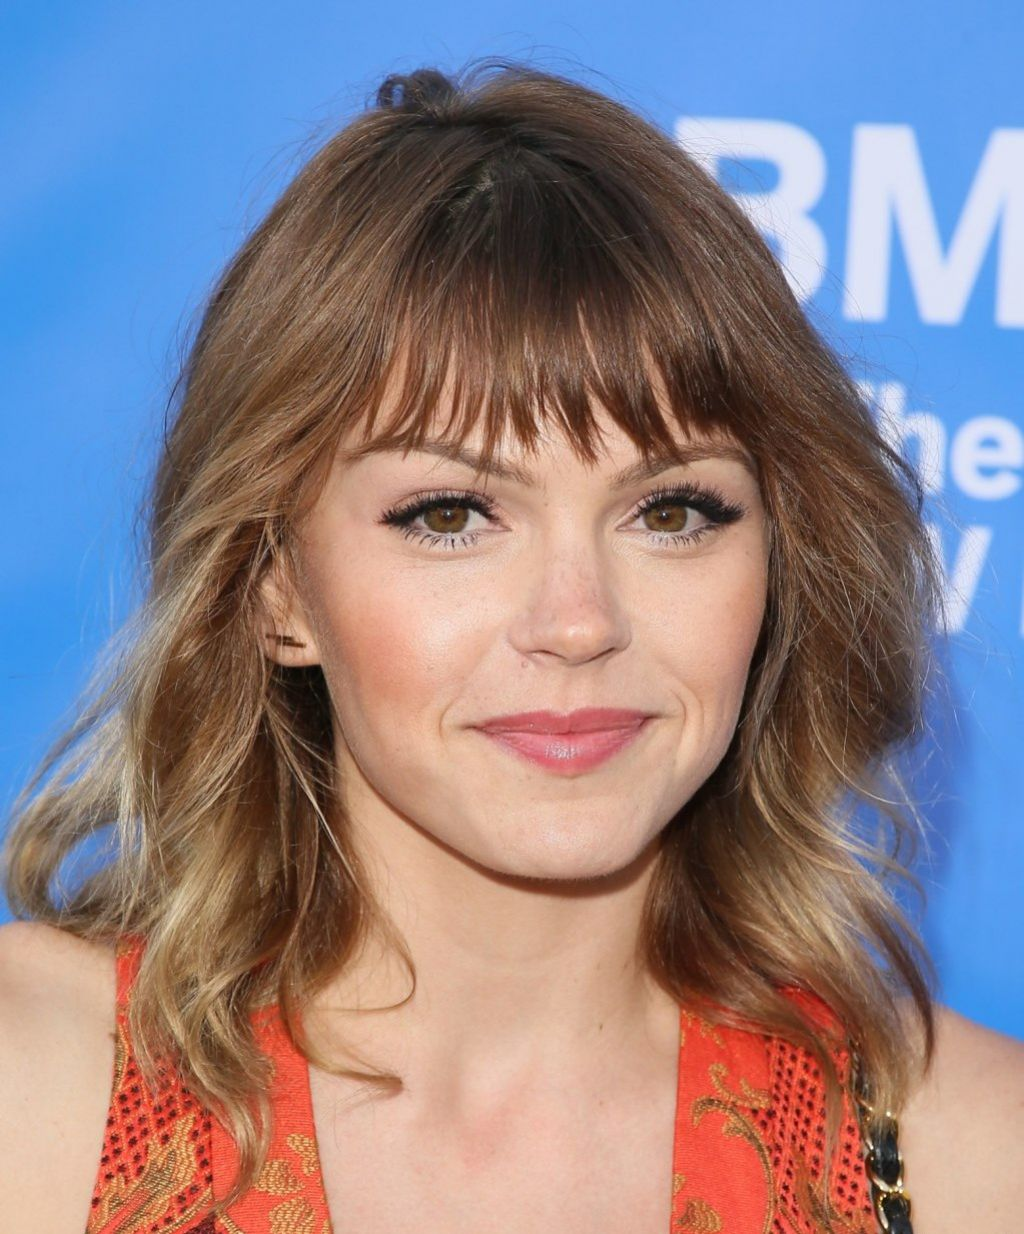 Aimee Teegarden 2015 Oceana Seachange Summer Party In